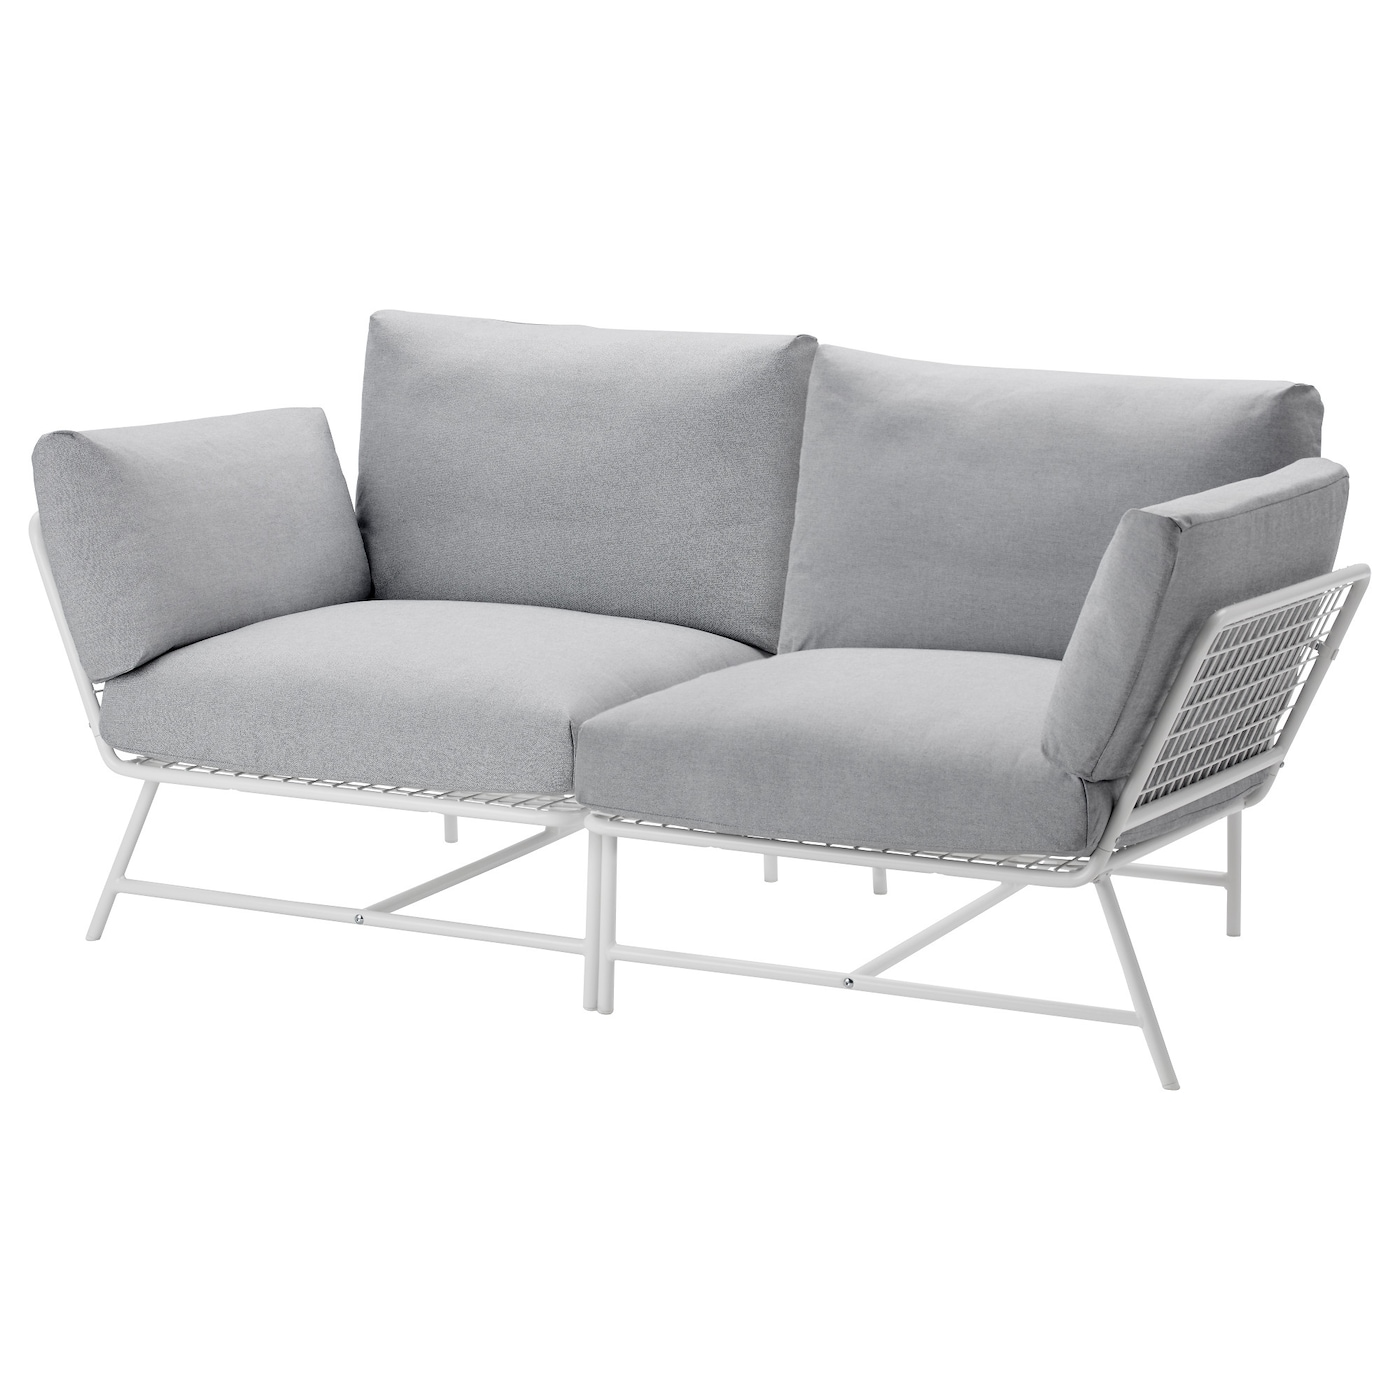 Ikea Ps 2017 2 Seat Sofa White Grey Ikea